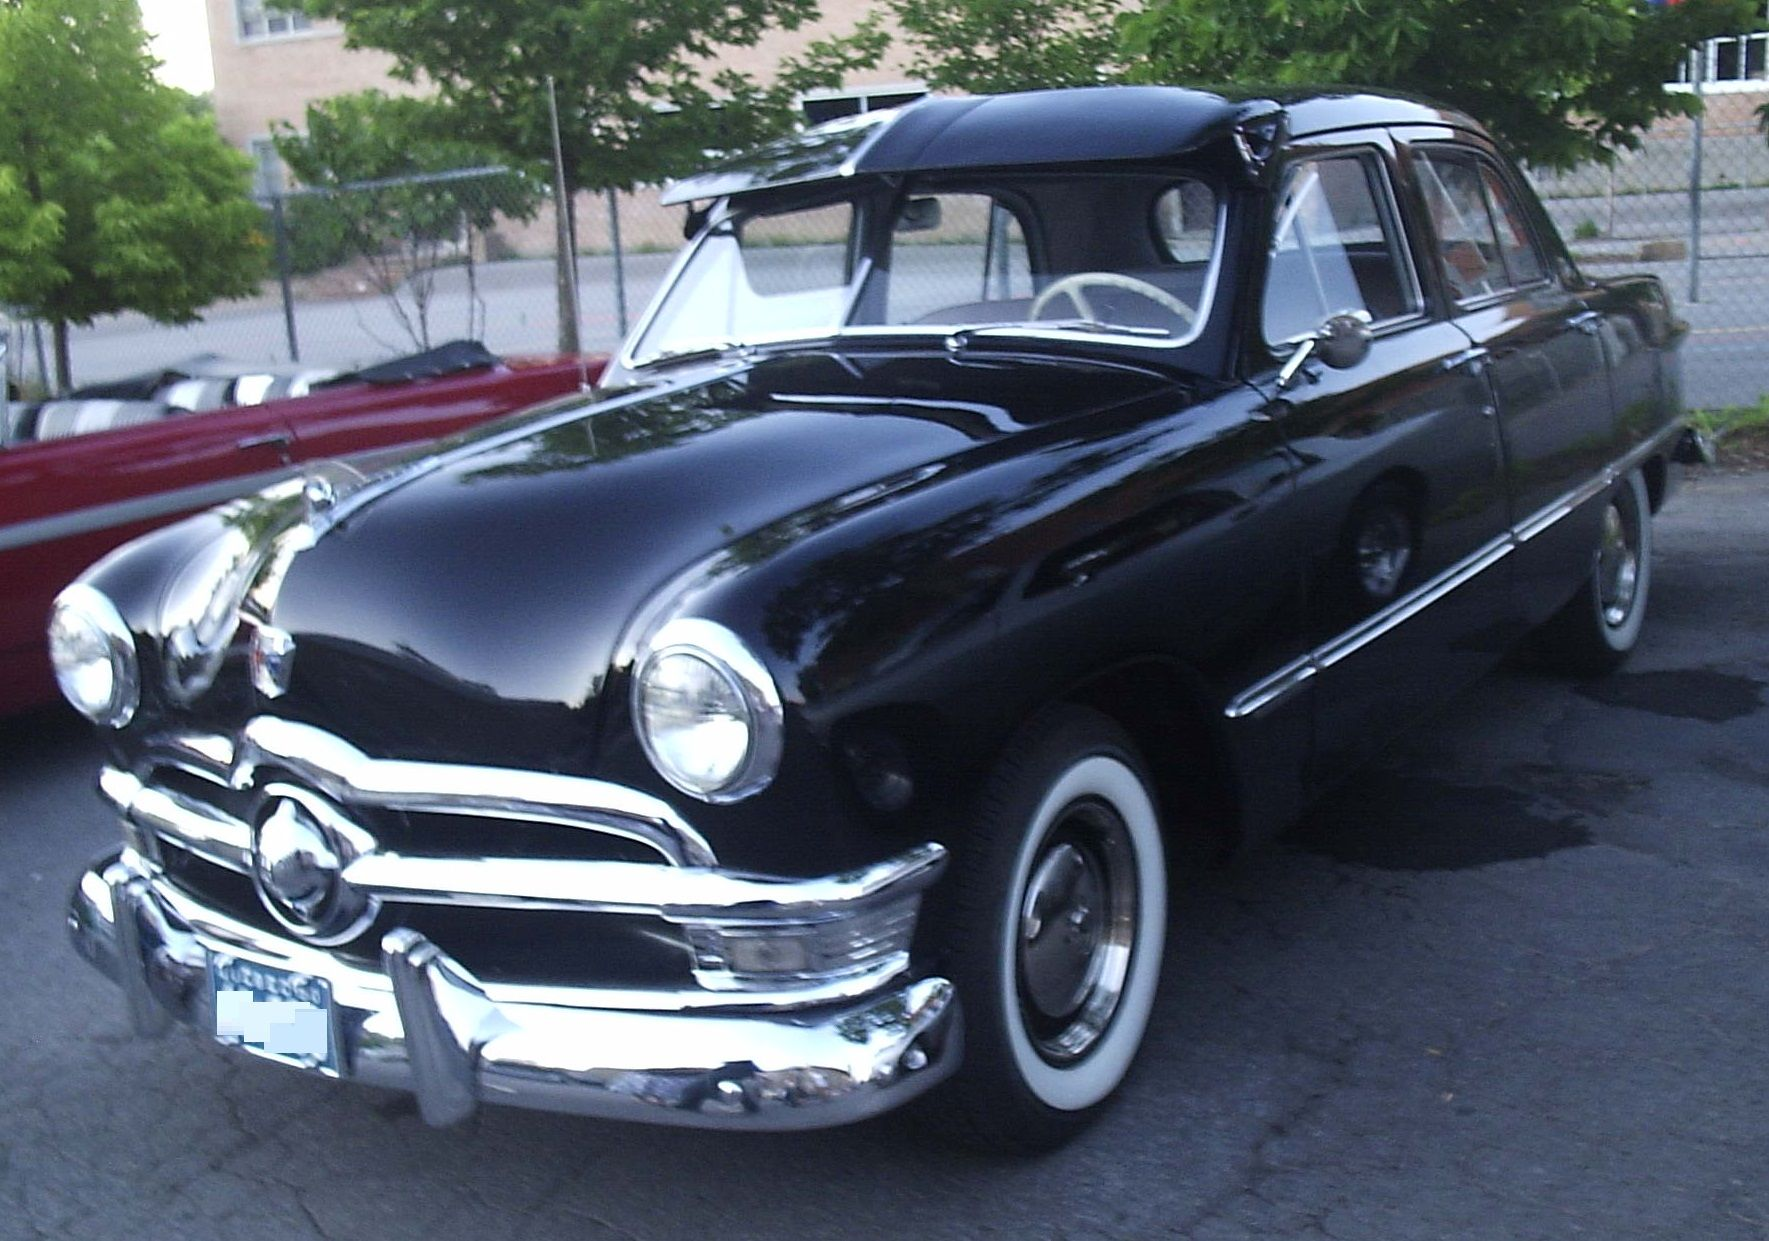 1950 ford custom sedan my first car was similar except it had a cream colored top with a polynesian bronze color below the windows added fende